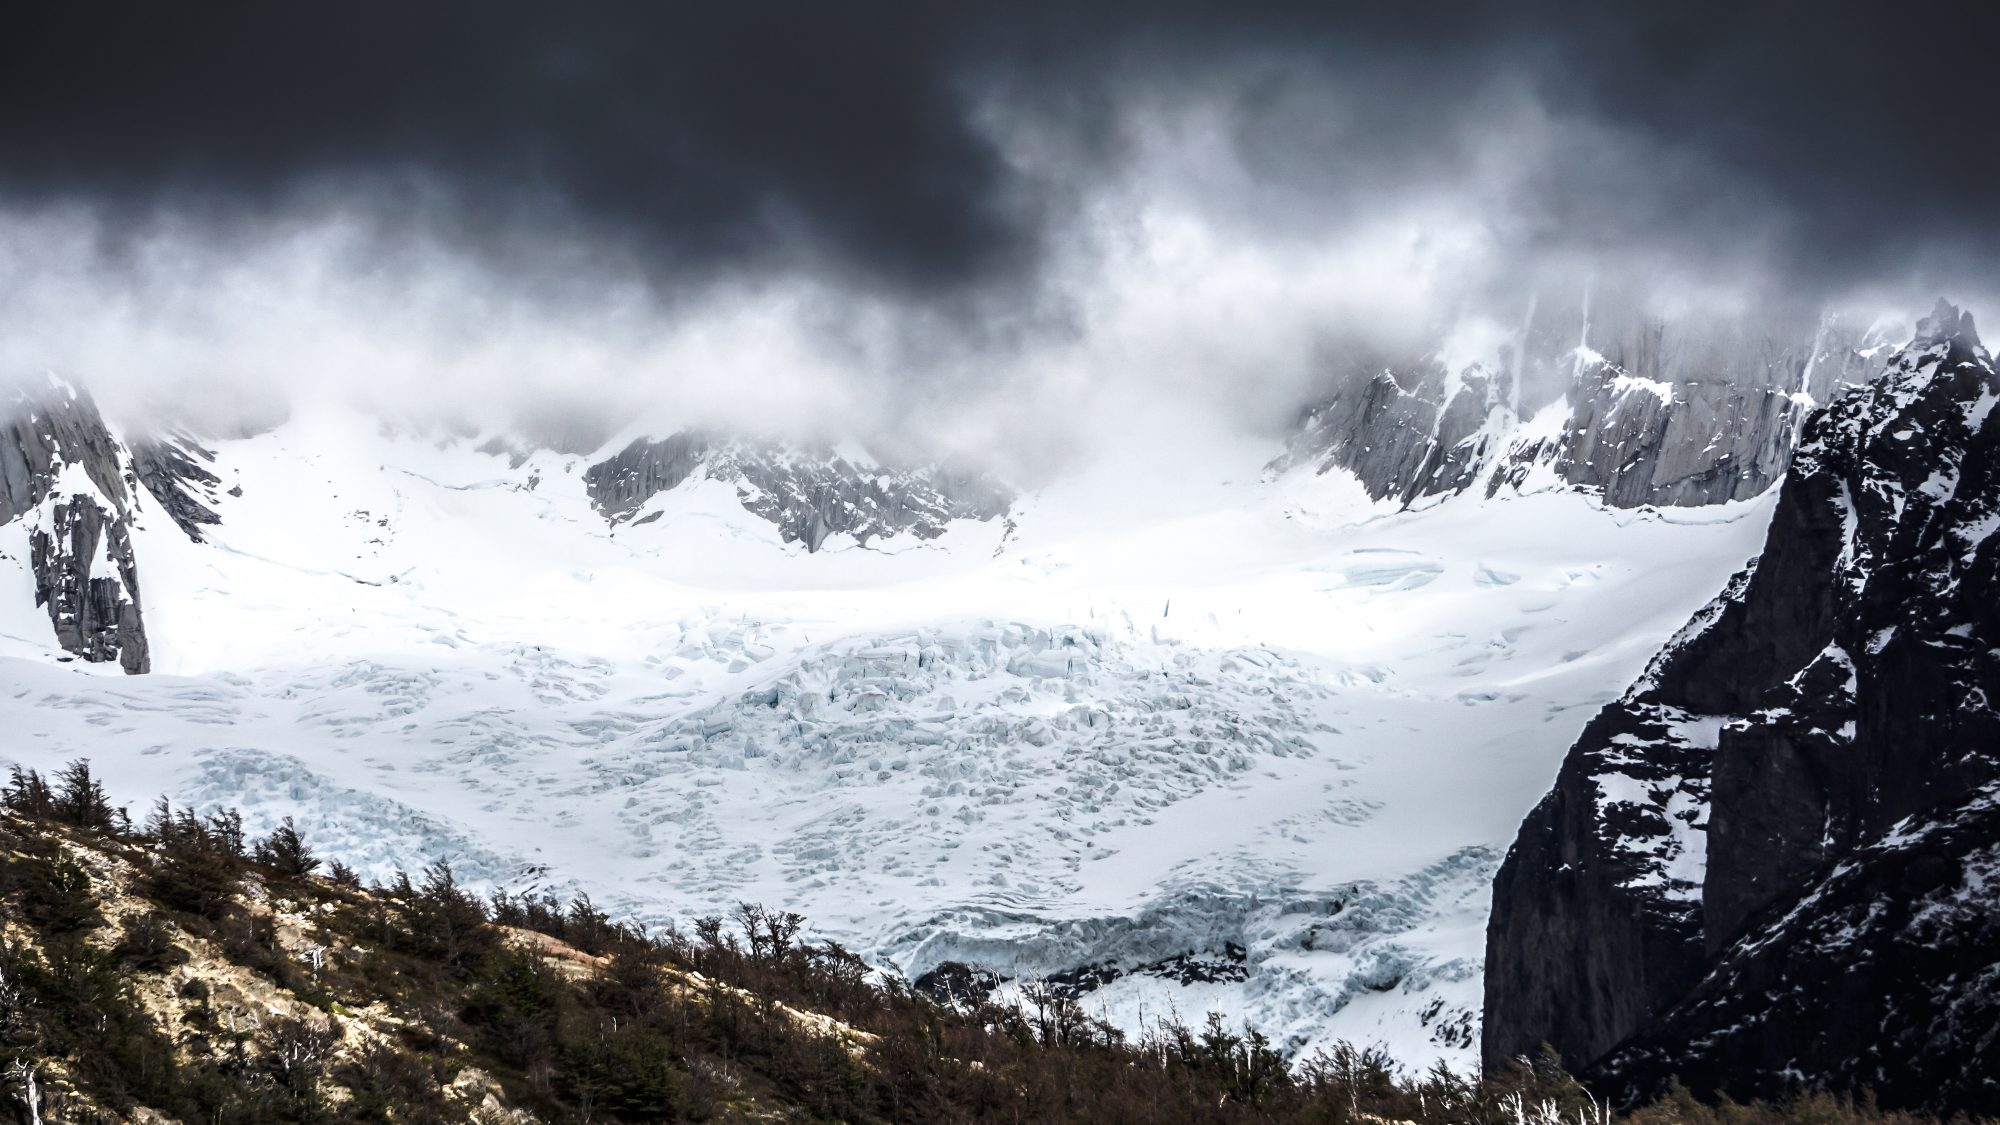 Photo- Mike Suarez- Unsplash. What is the real risk from avalanches?